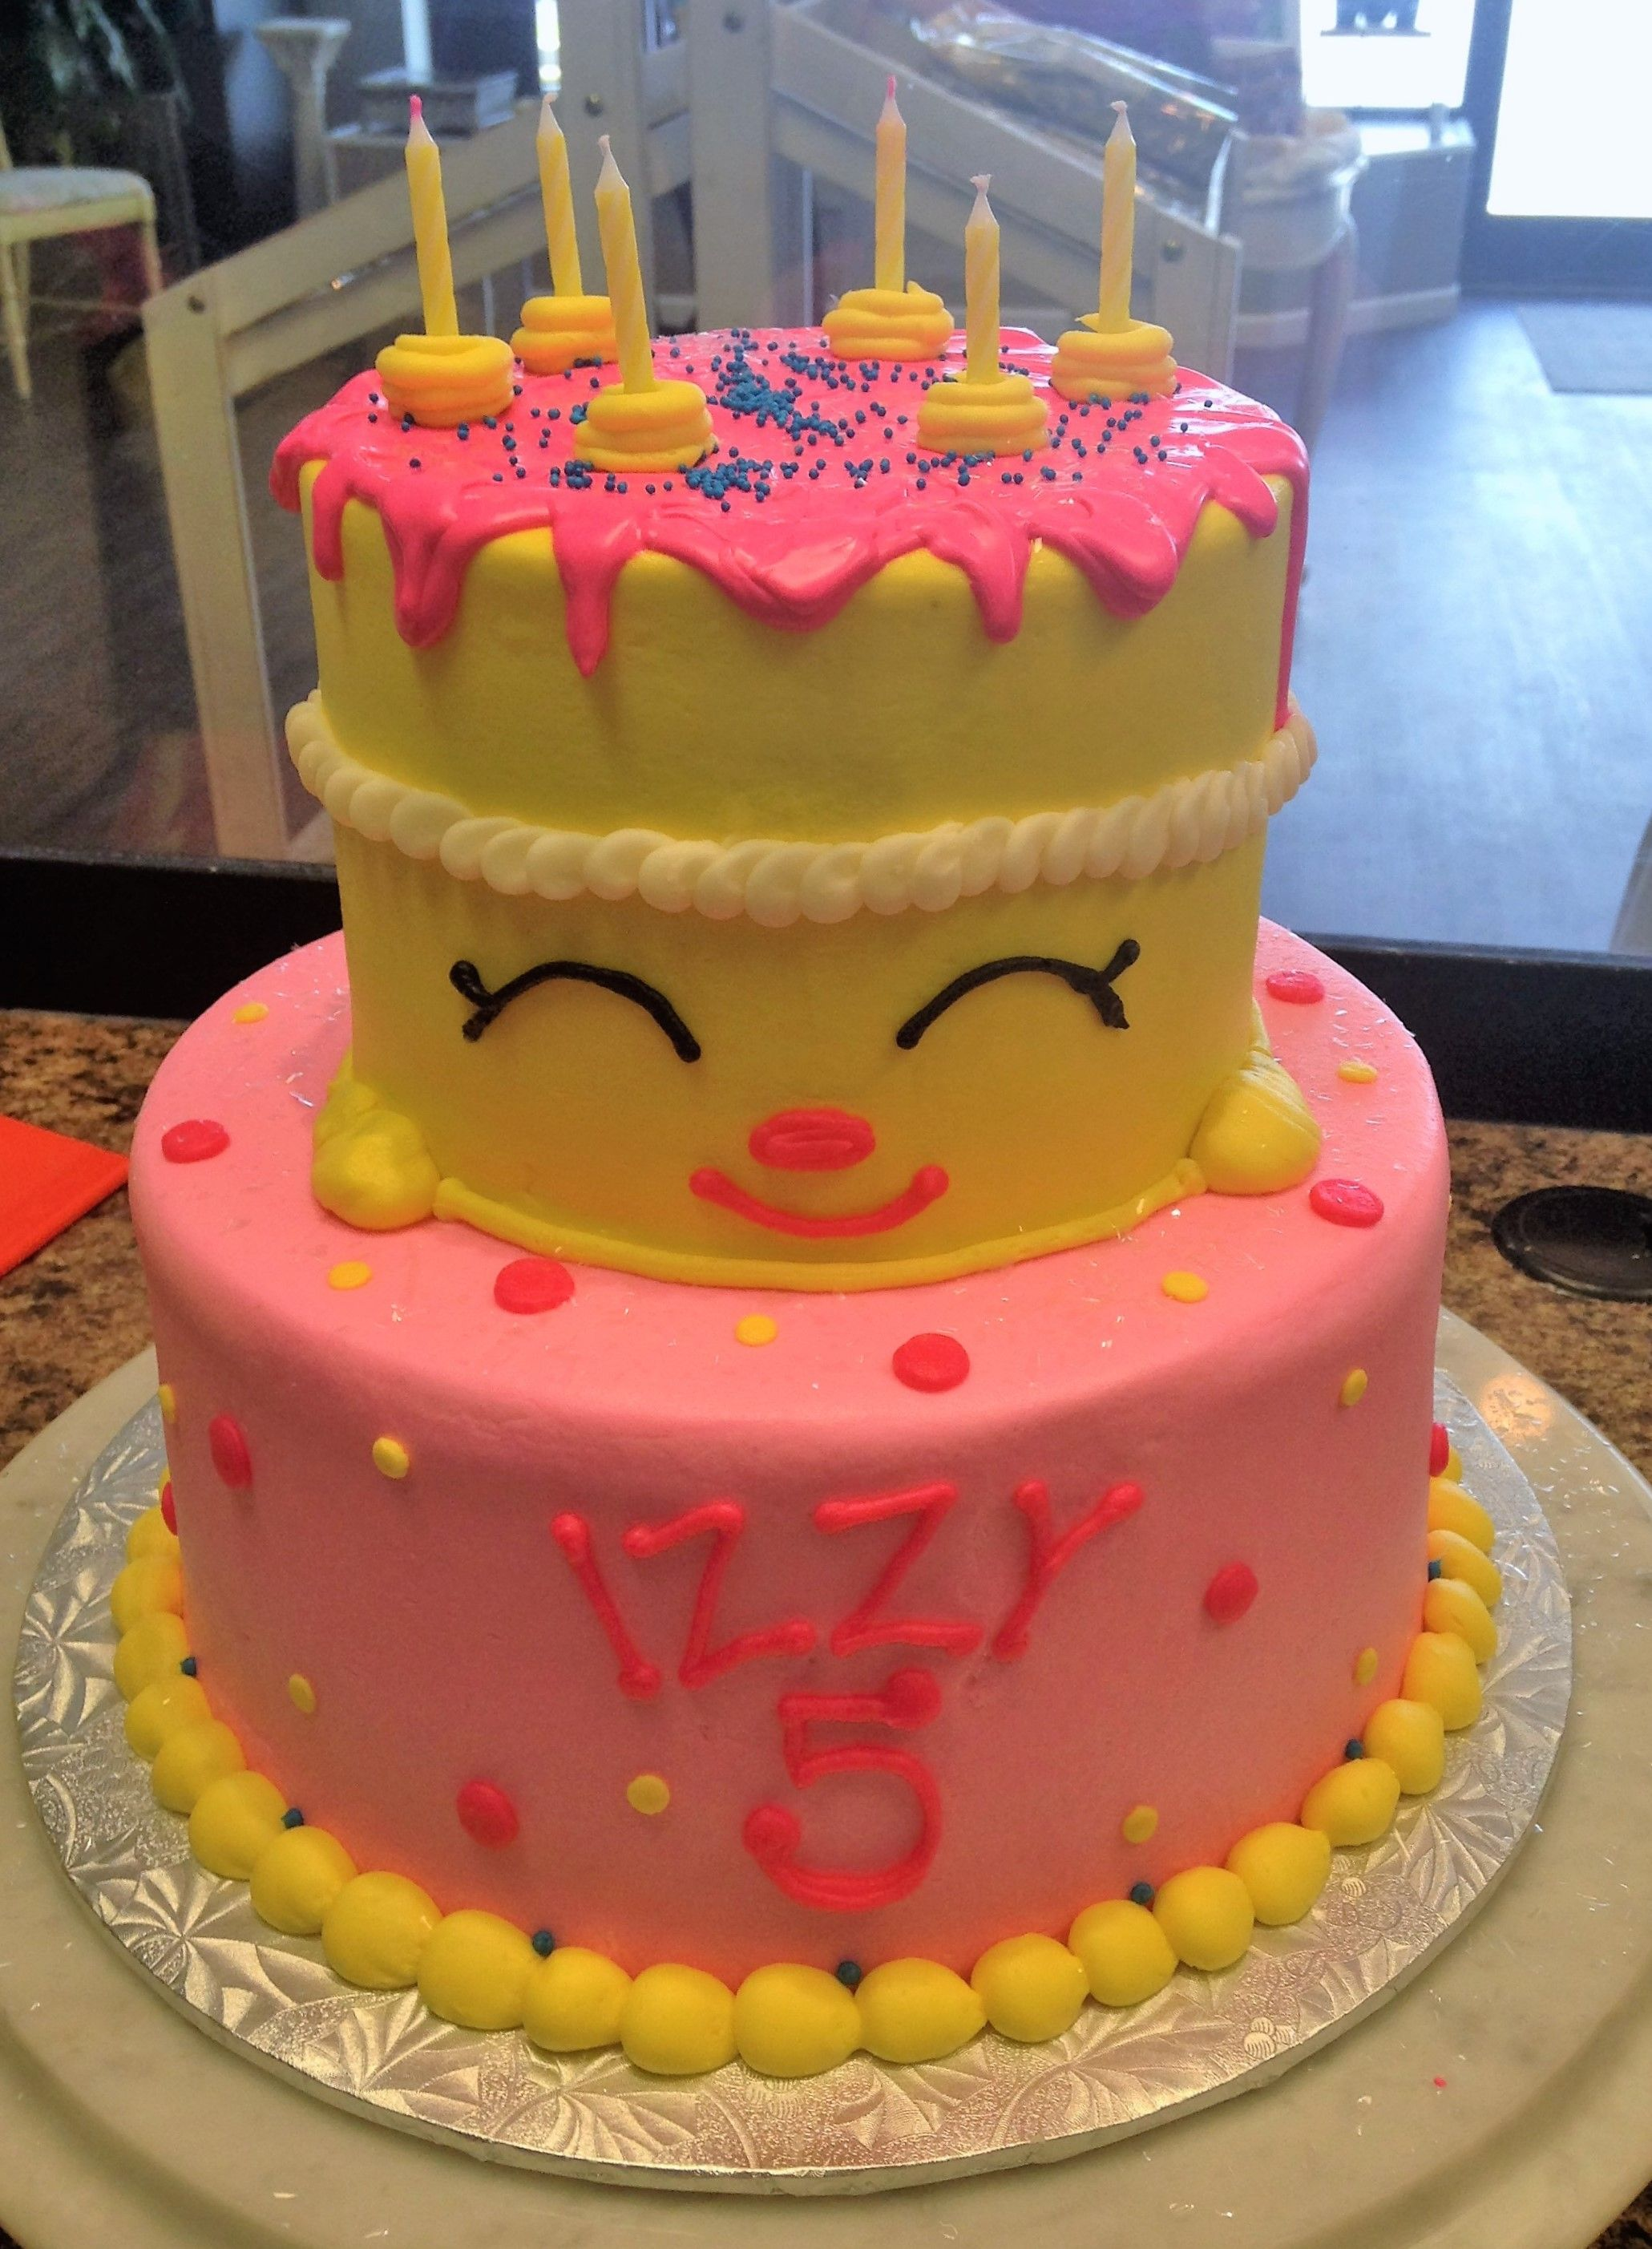 Shopkins Wishes 2 Tier Birthday Cake Decorated With